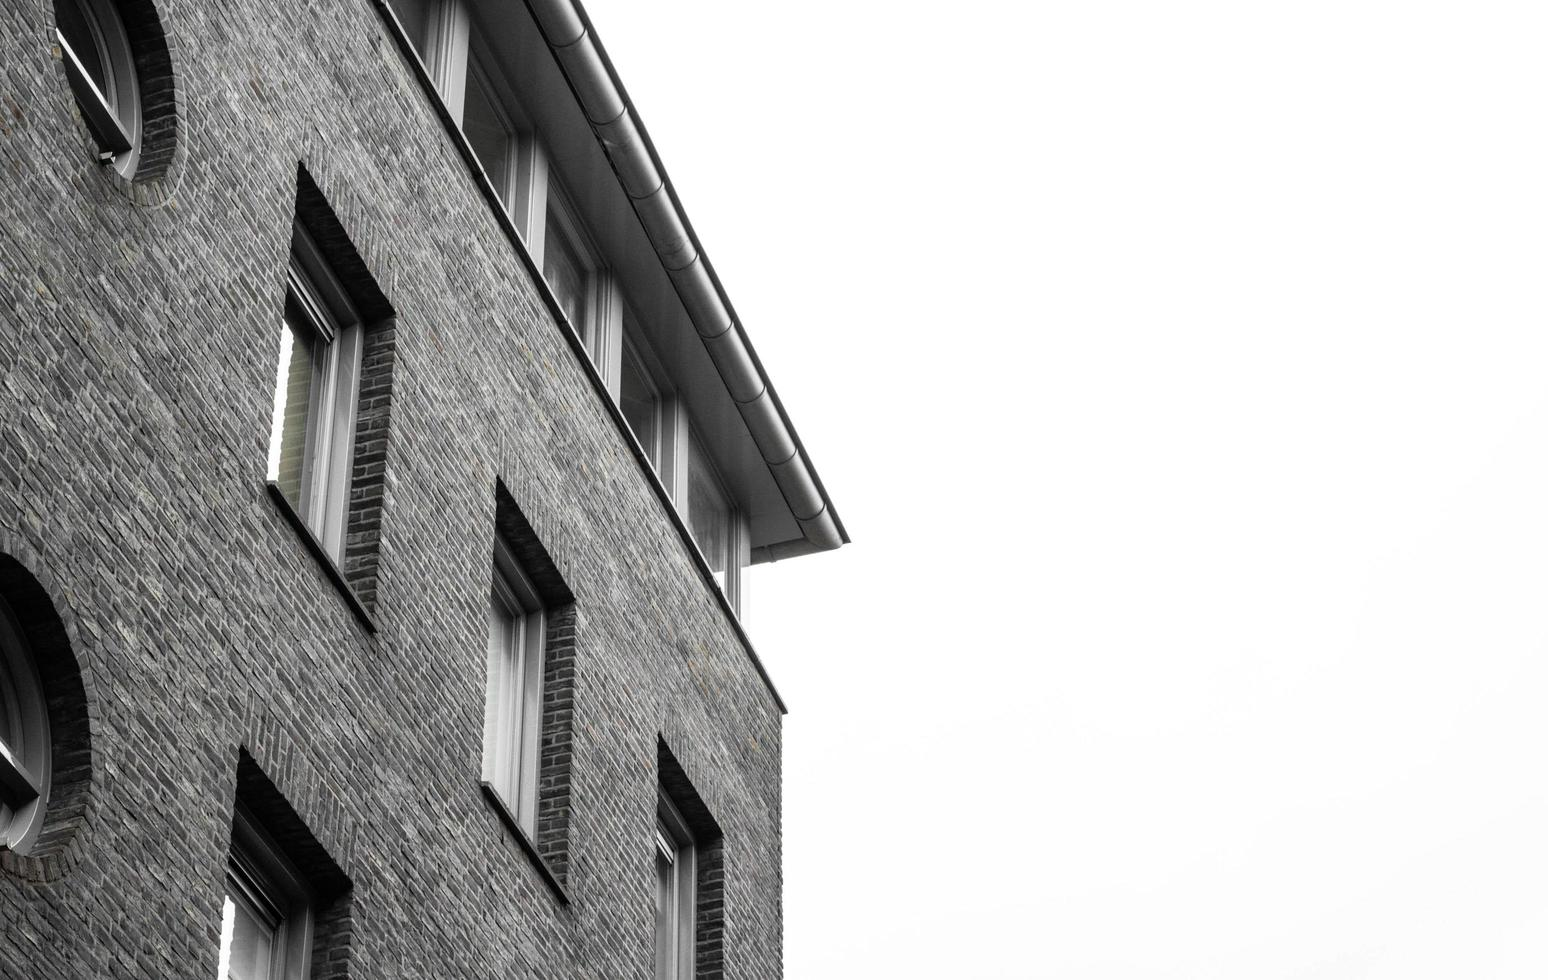 Grayscale of a brick building photo